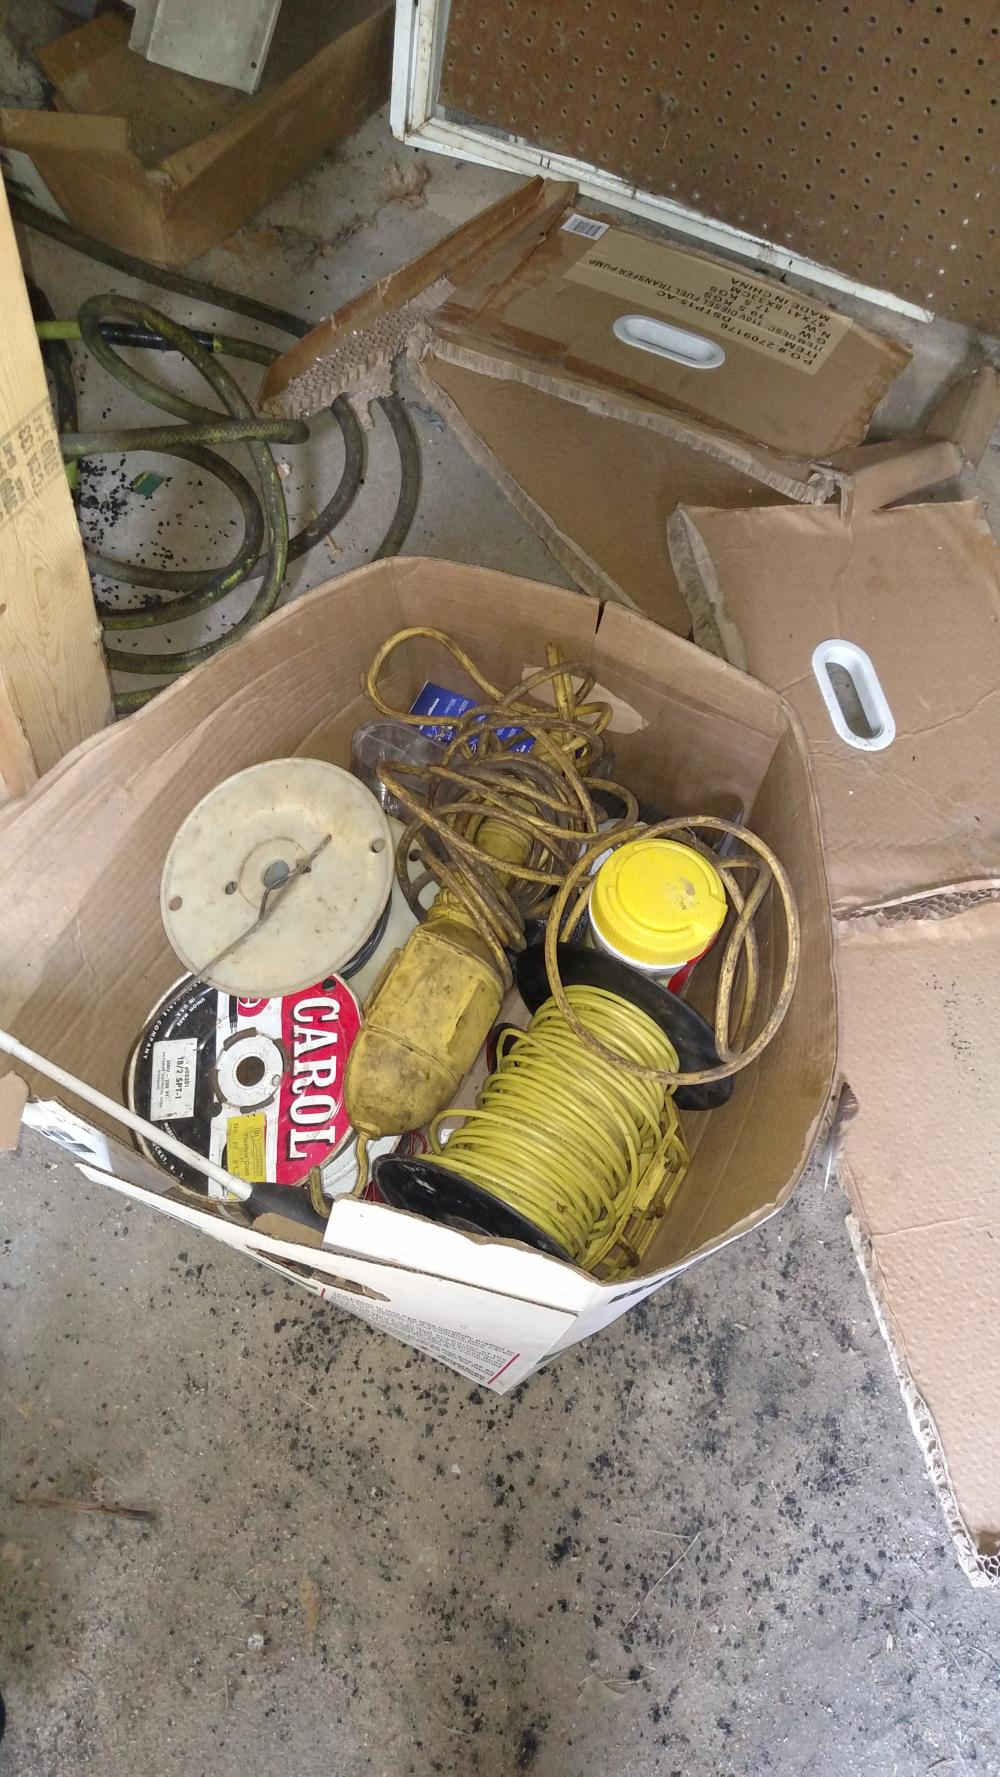 room contents--toilet bottom, light fixtures, cords and wire, pot luck joblot